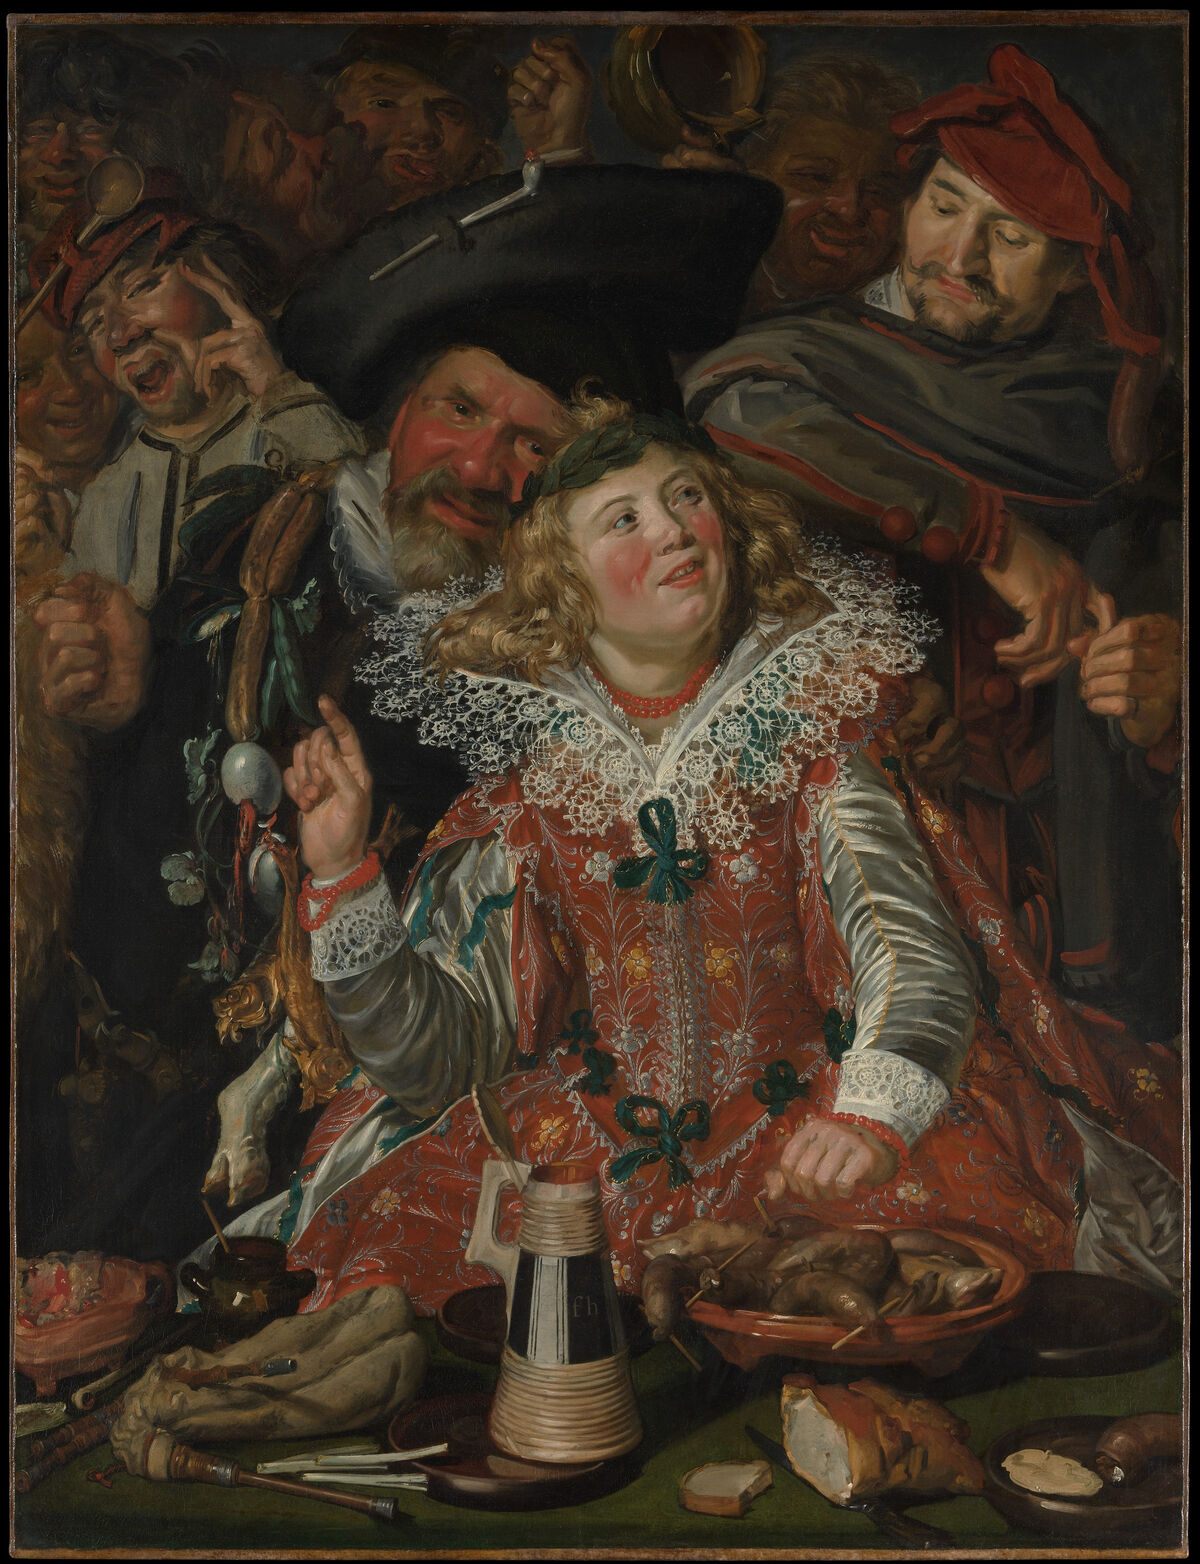 Frans Hals, Merrymakers at Shrovetide, ca. 1616-17. Courtesy of the Metropolitan Museum of Art.